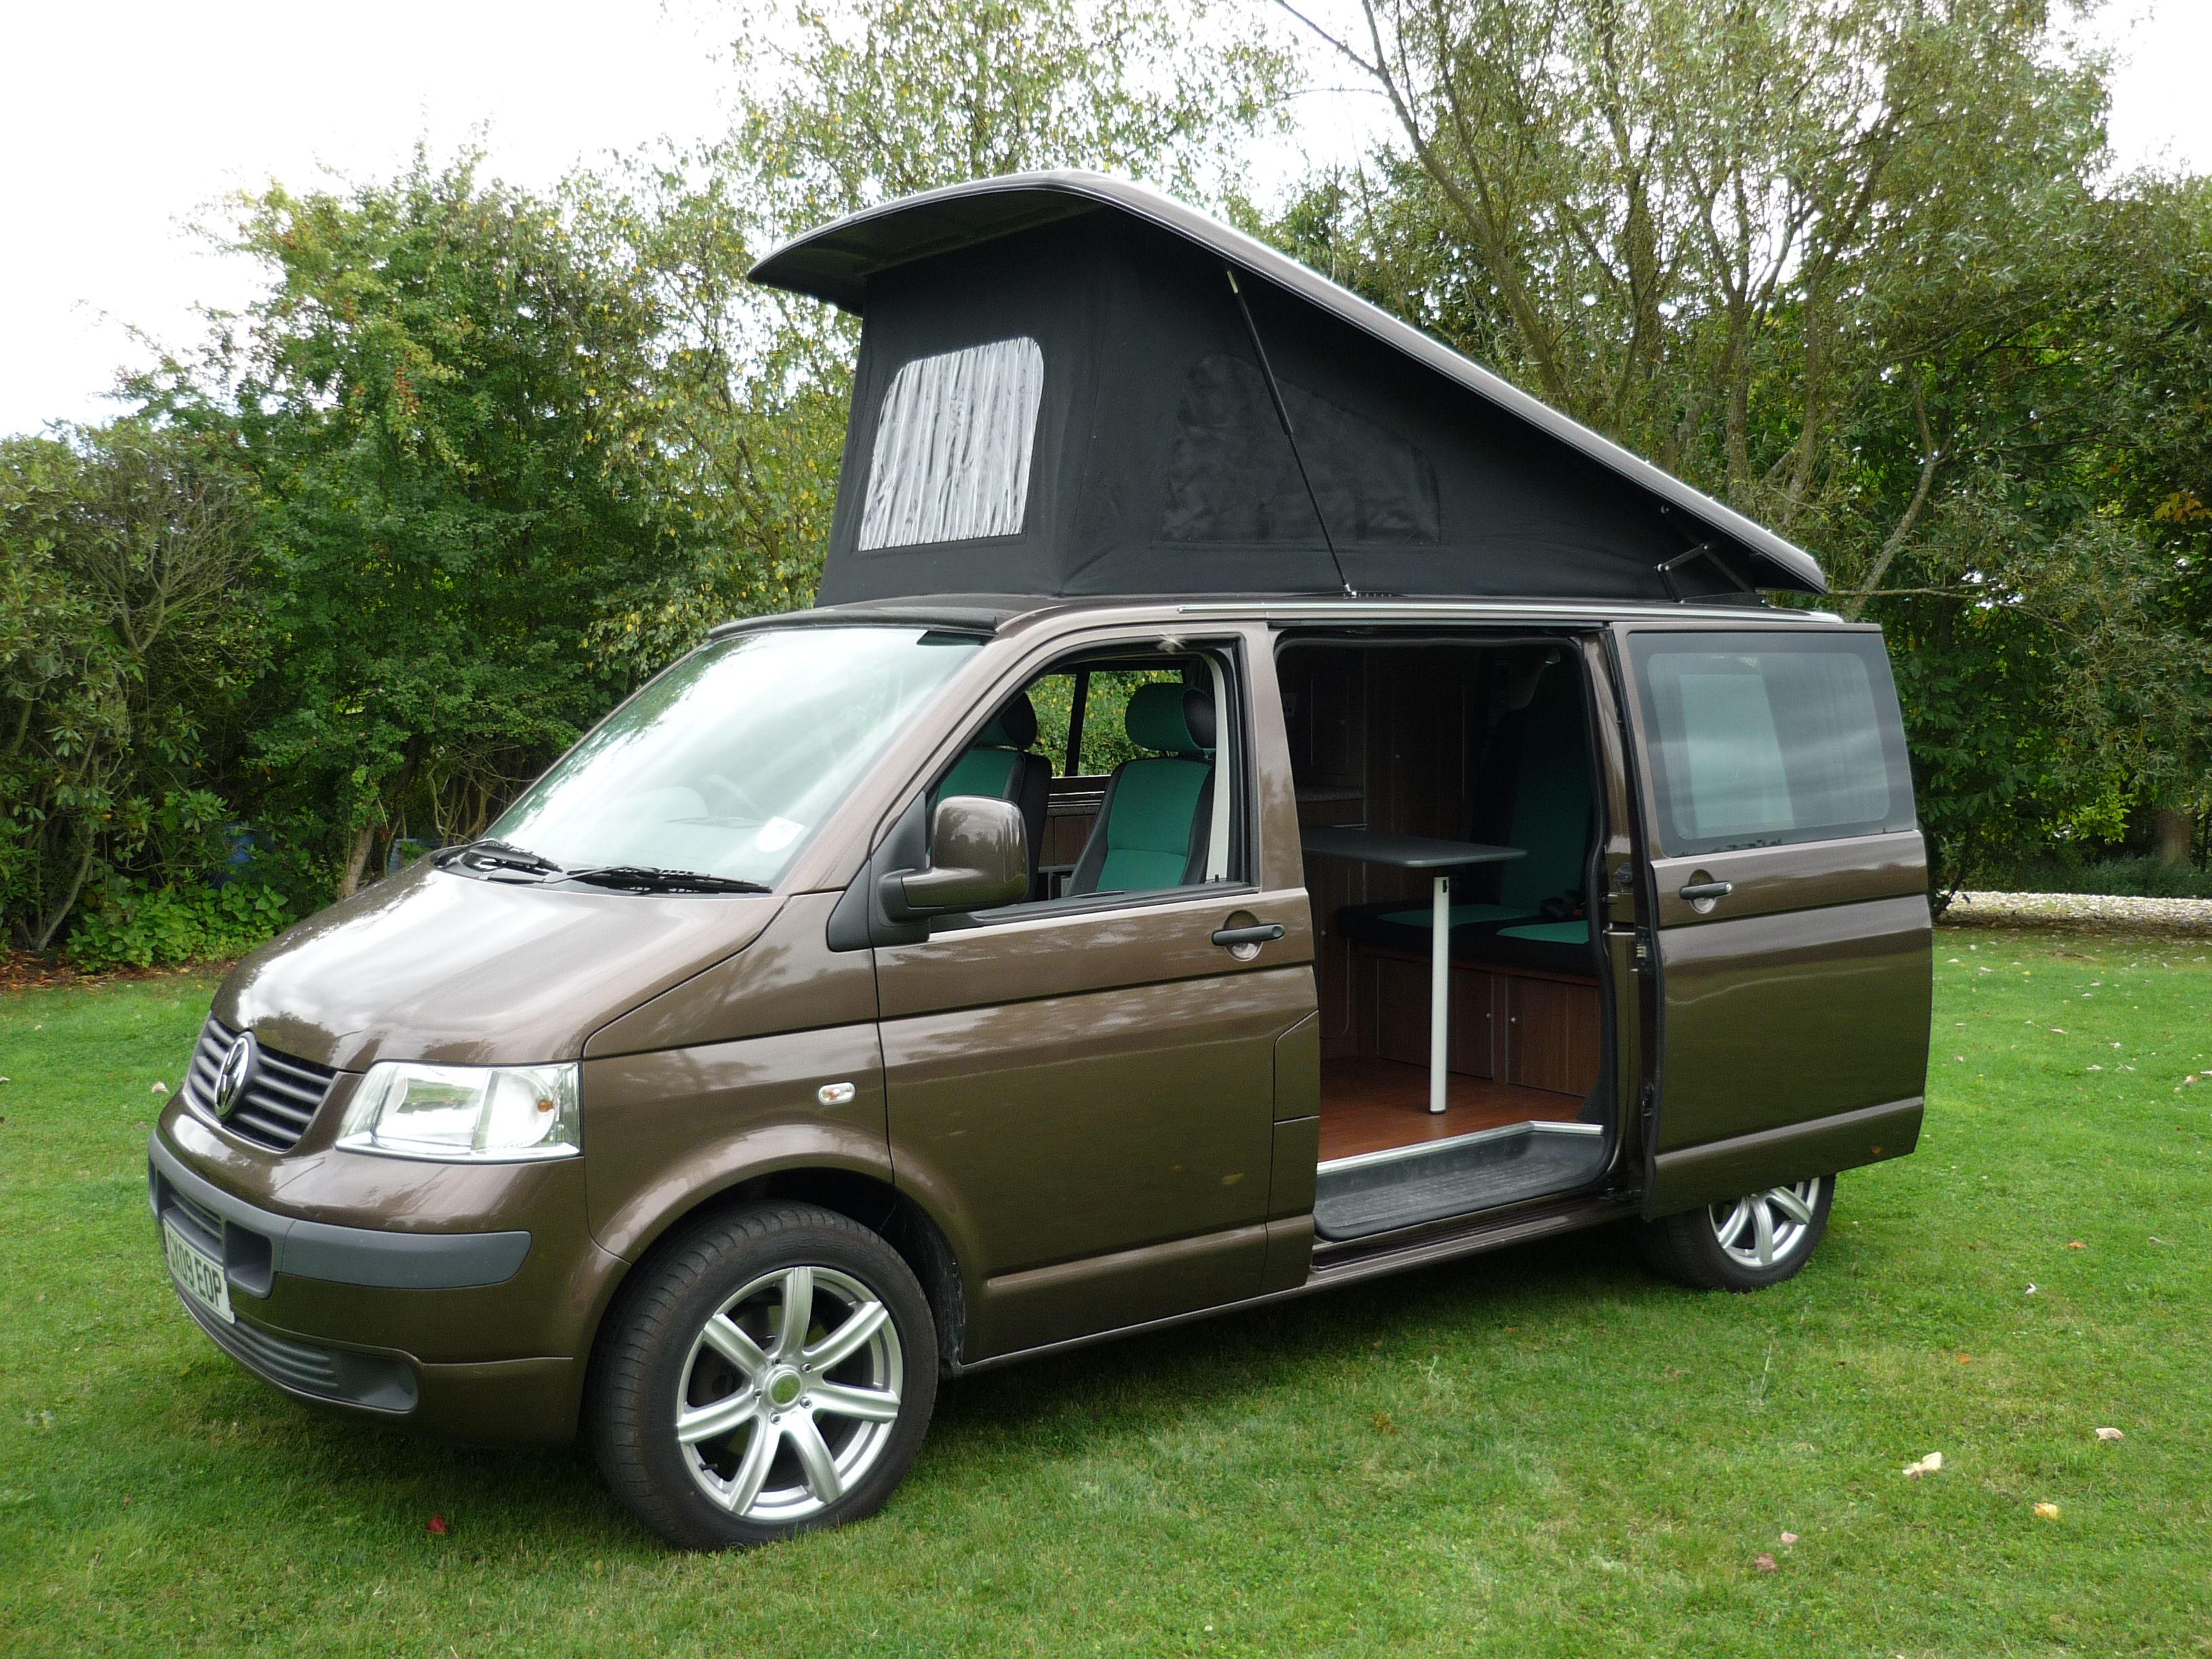 the ever popular vw t5 campervan conversion the caledonia from sussex campervans this one was. Black Bedroom Furniture Sets. Home Design Ideas